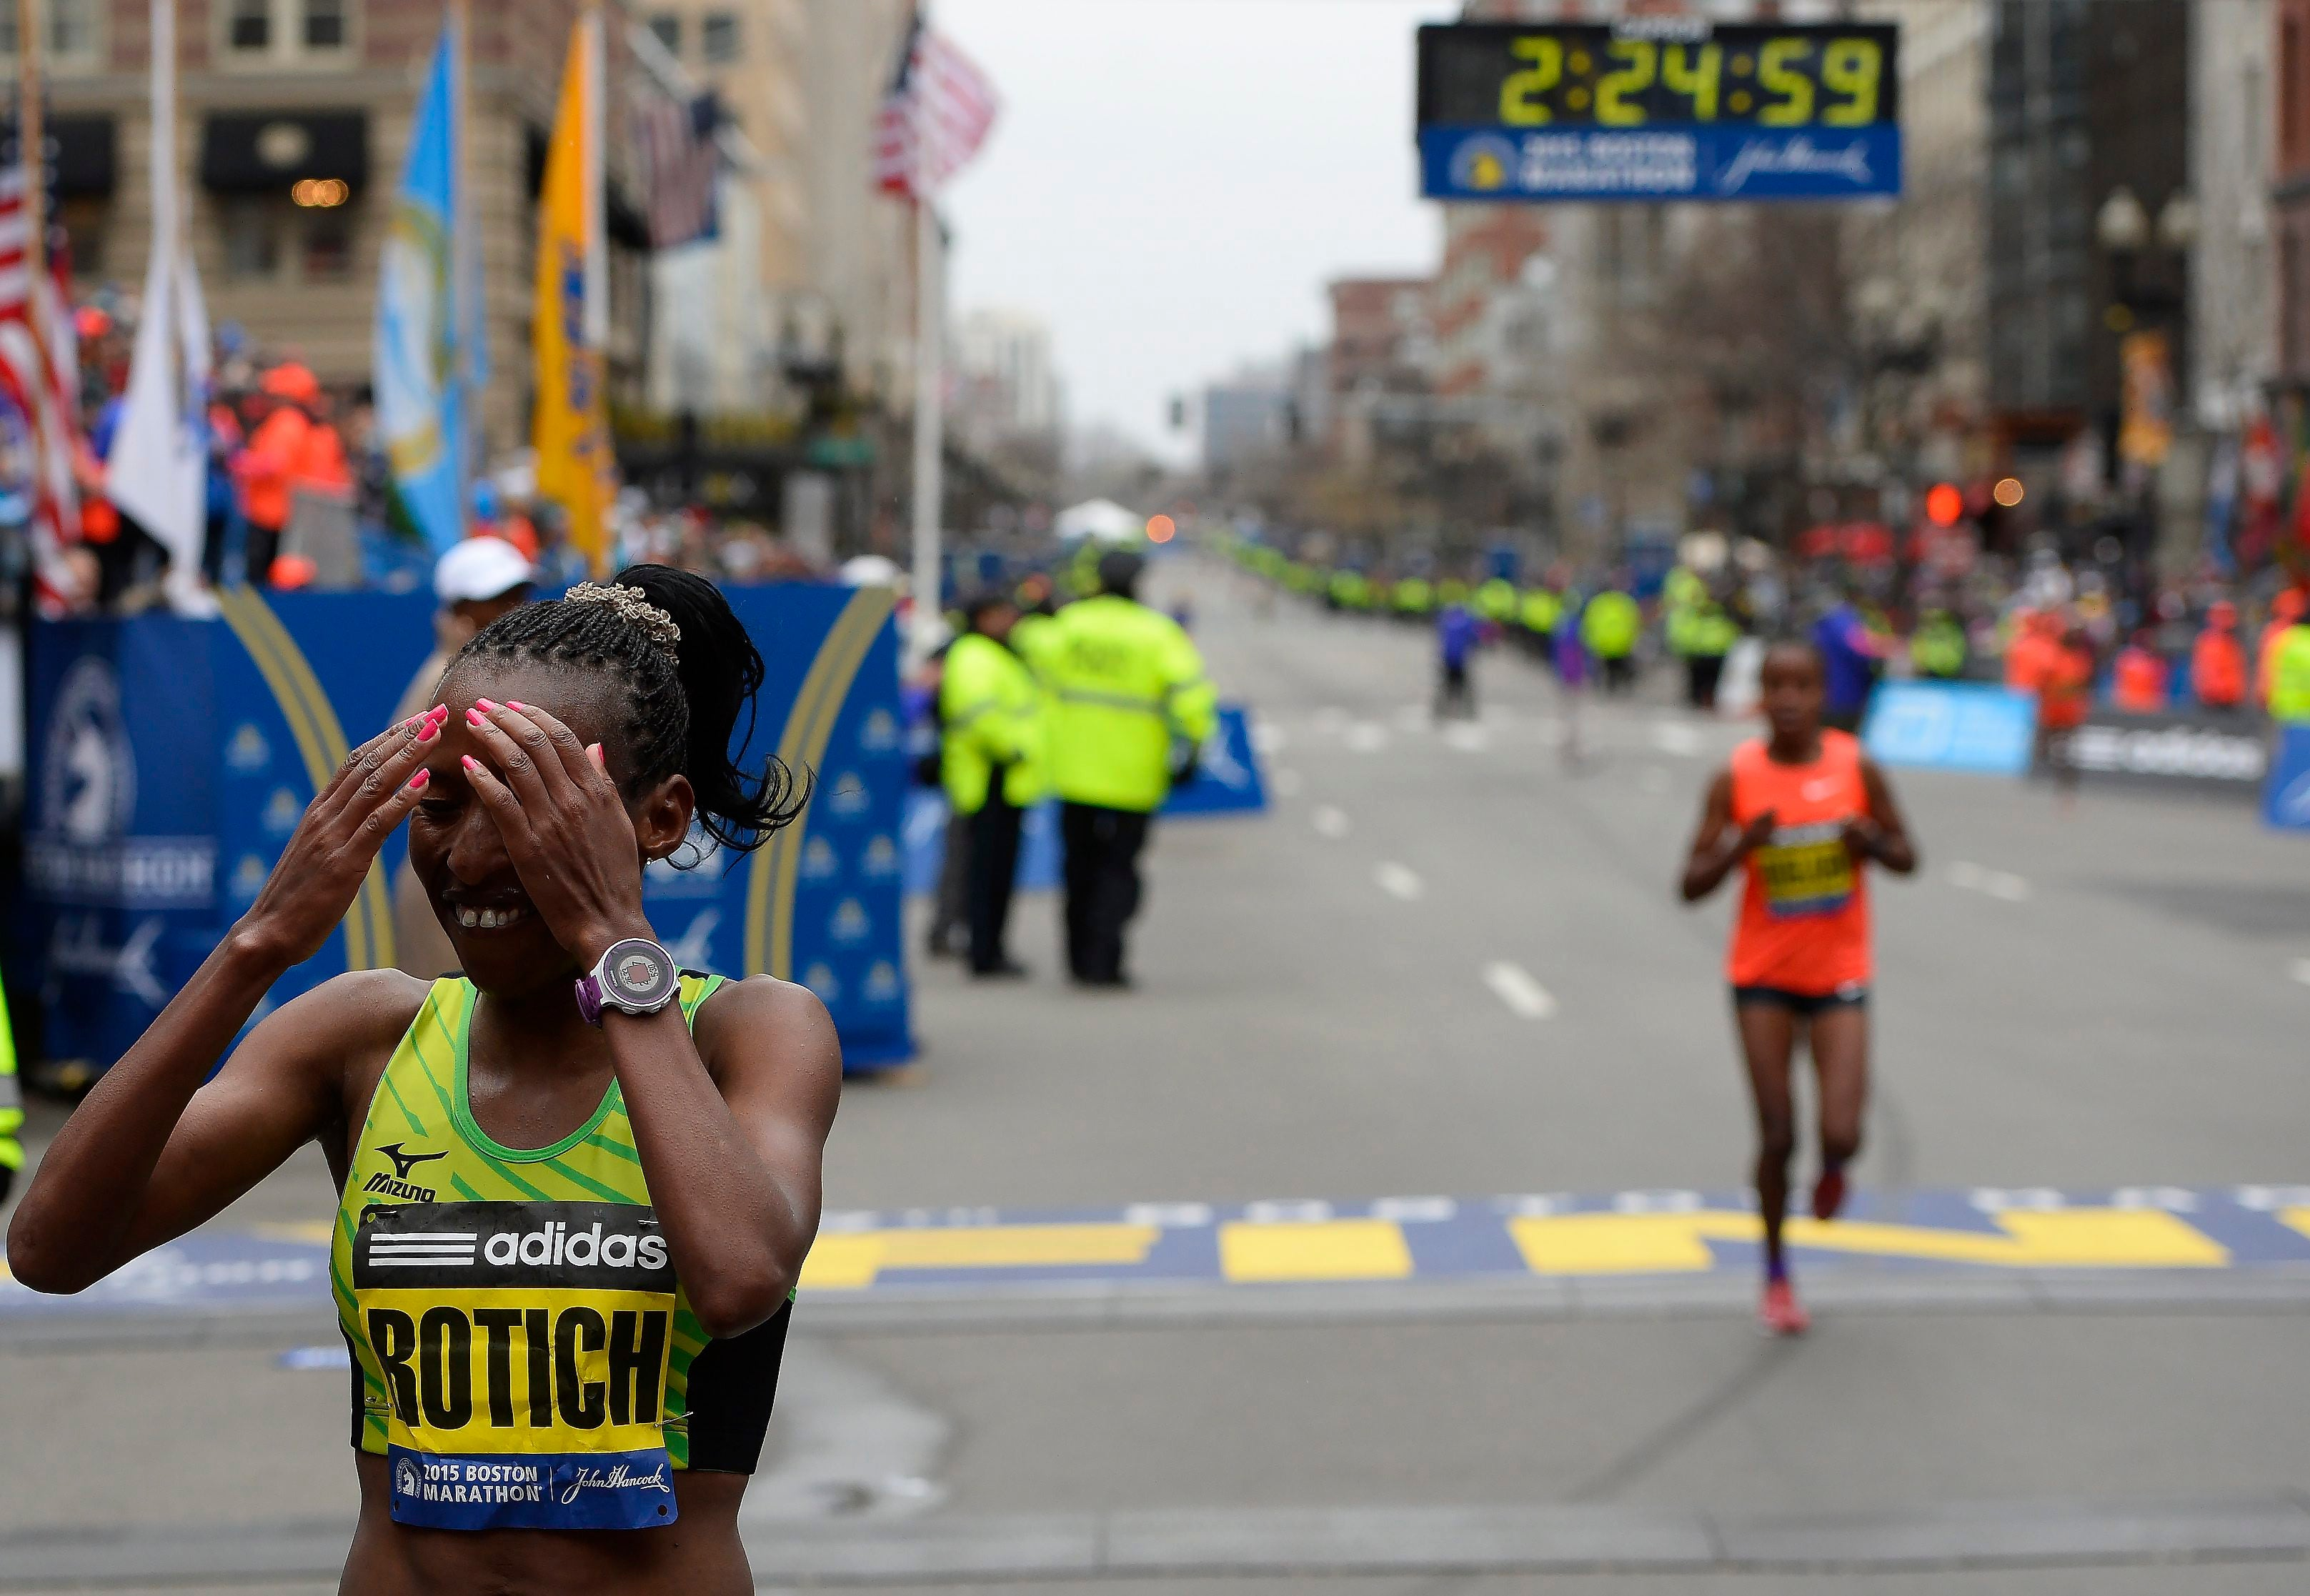 Caroline Rotich of Kenya reacts after winning the women's division.